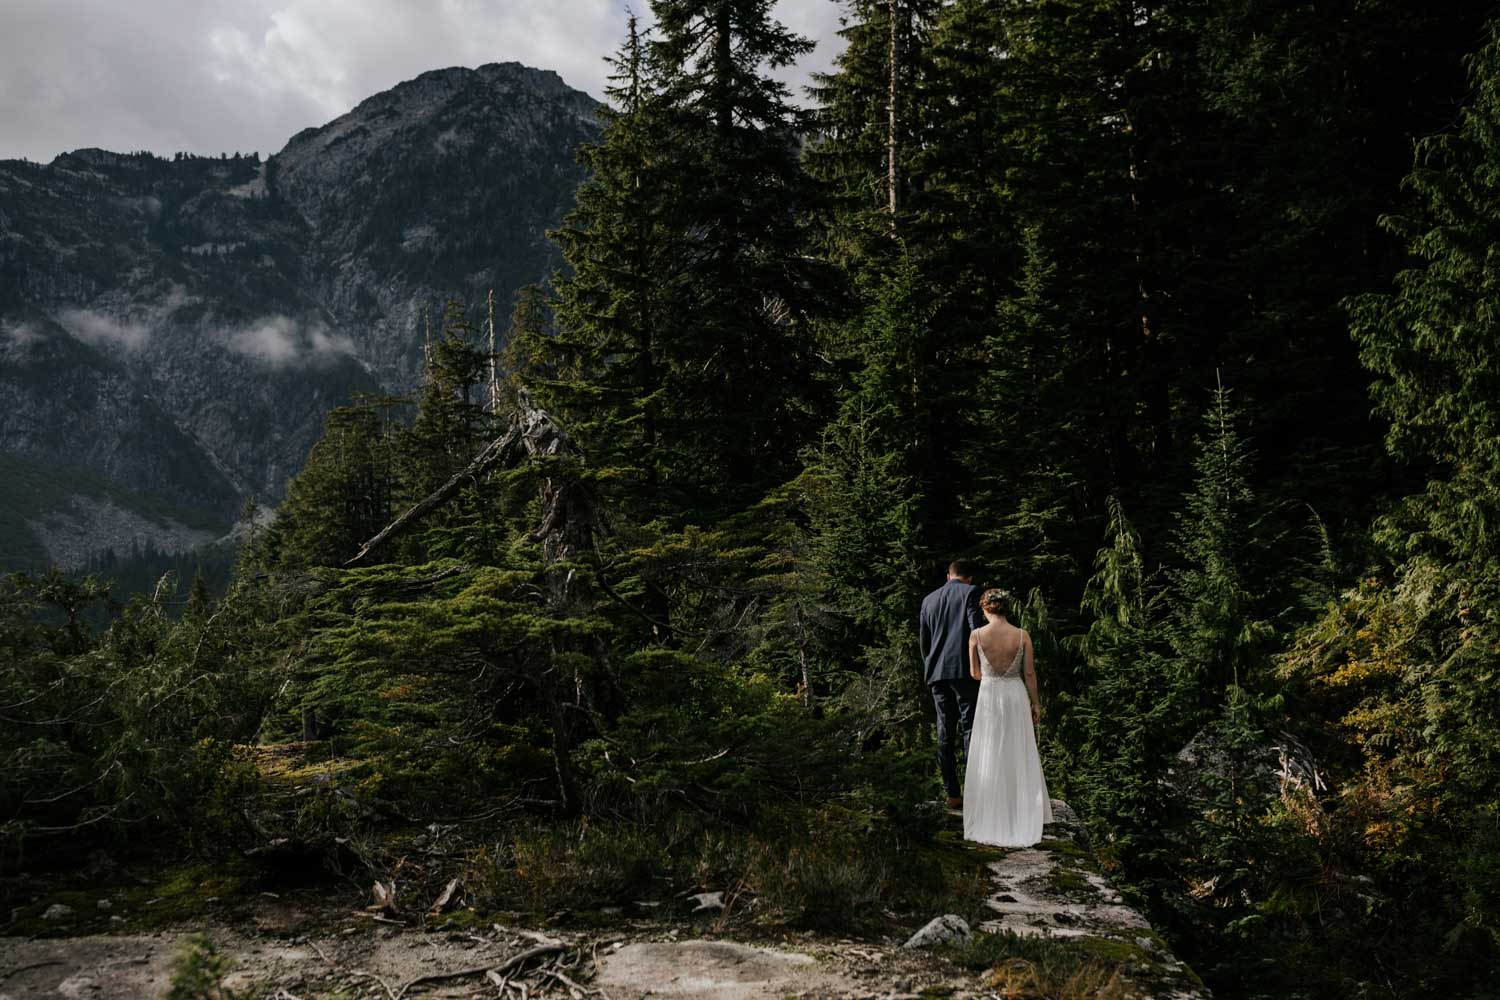 Incredible location for adventure mountain elopement in Vancouver in the PNW forest